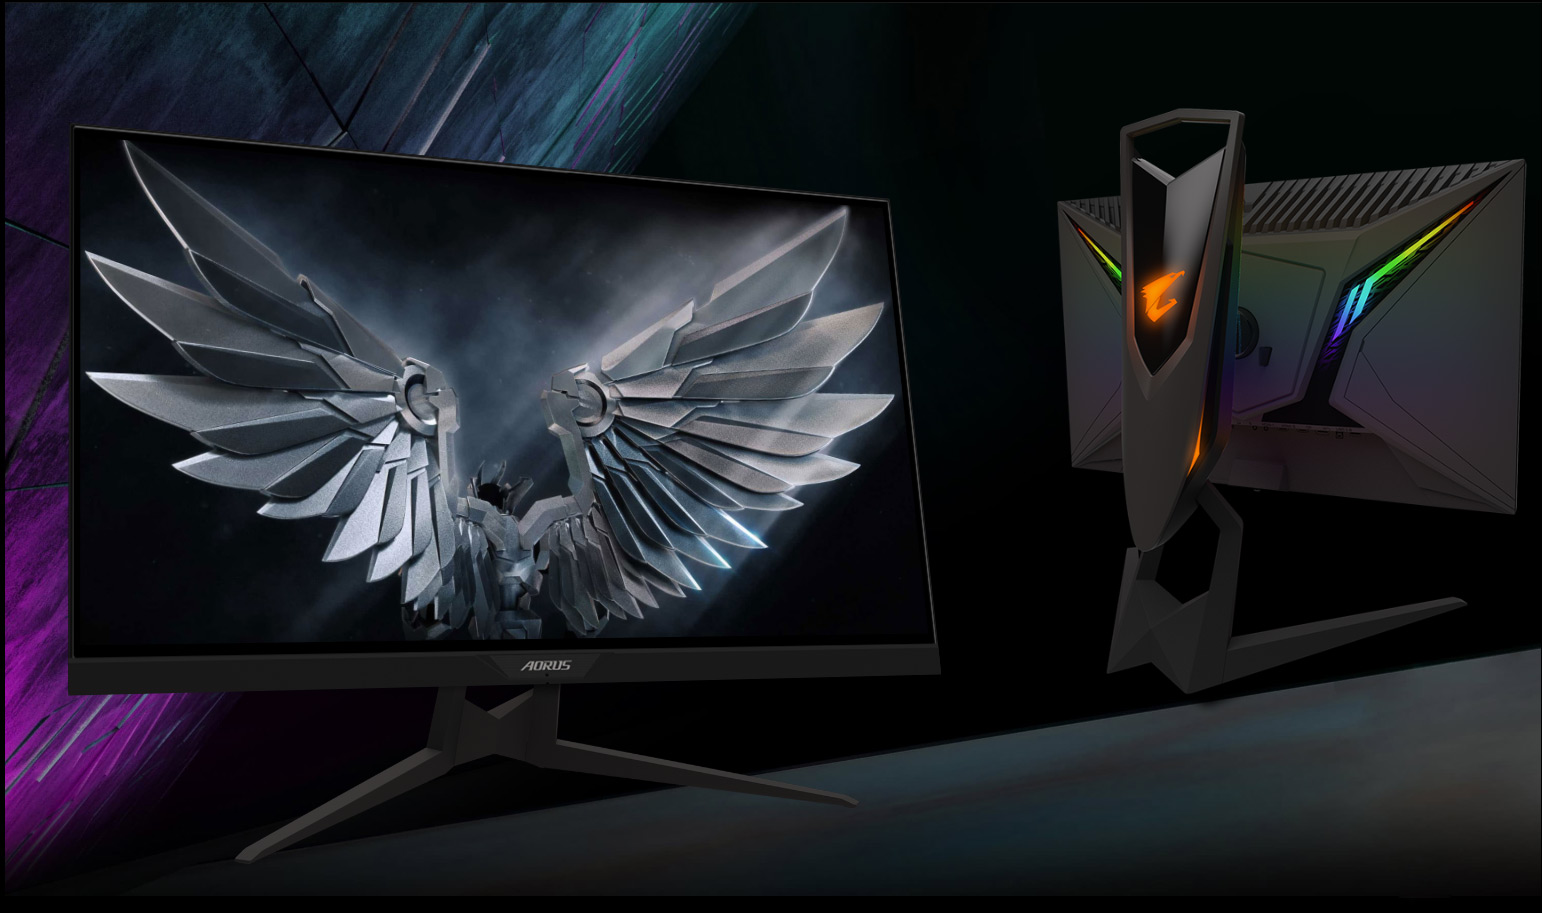 a robot bird as screenshot of monitor, and a back of the monitor